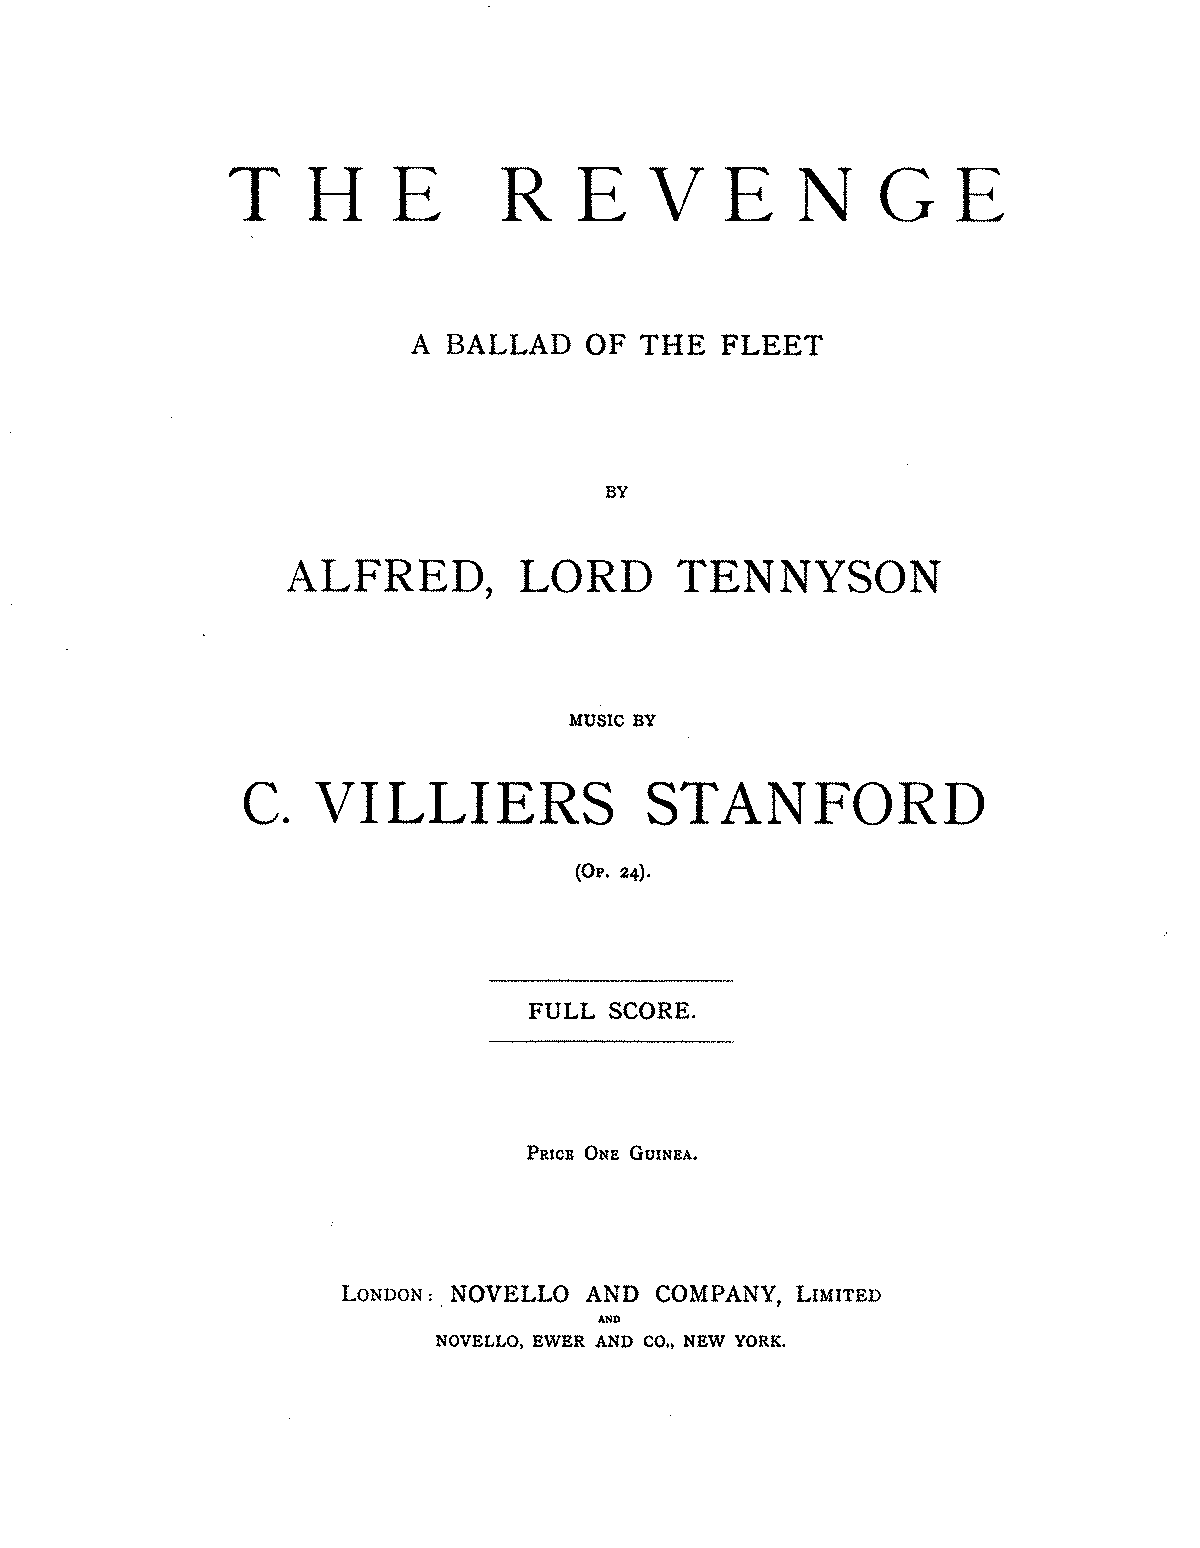 PMLP78514-Stanford - The Revenge - A Ballad of the Fleet Op 24.pdf